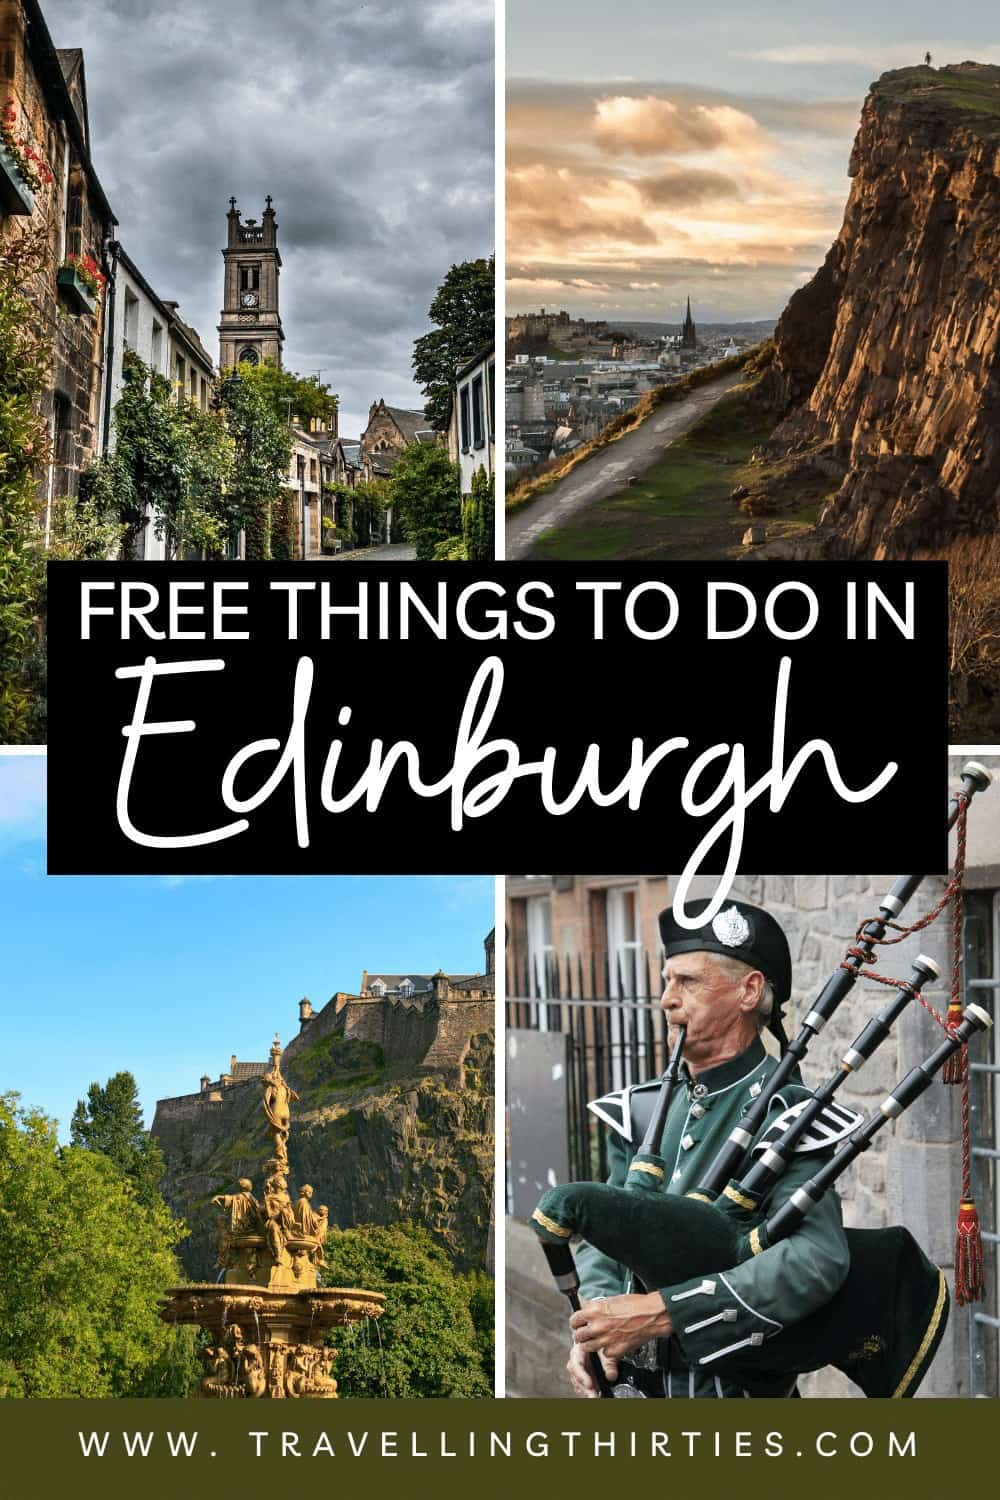 A pinterest graphic for free things to do in Edinburgh